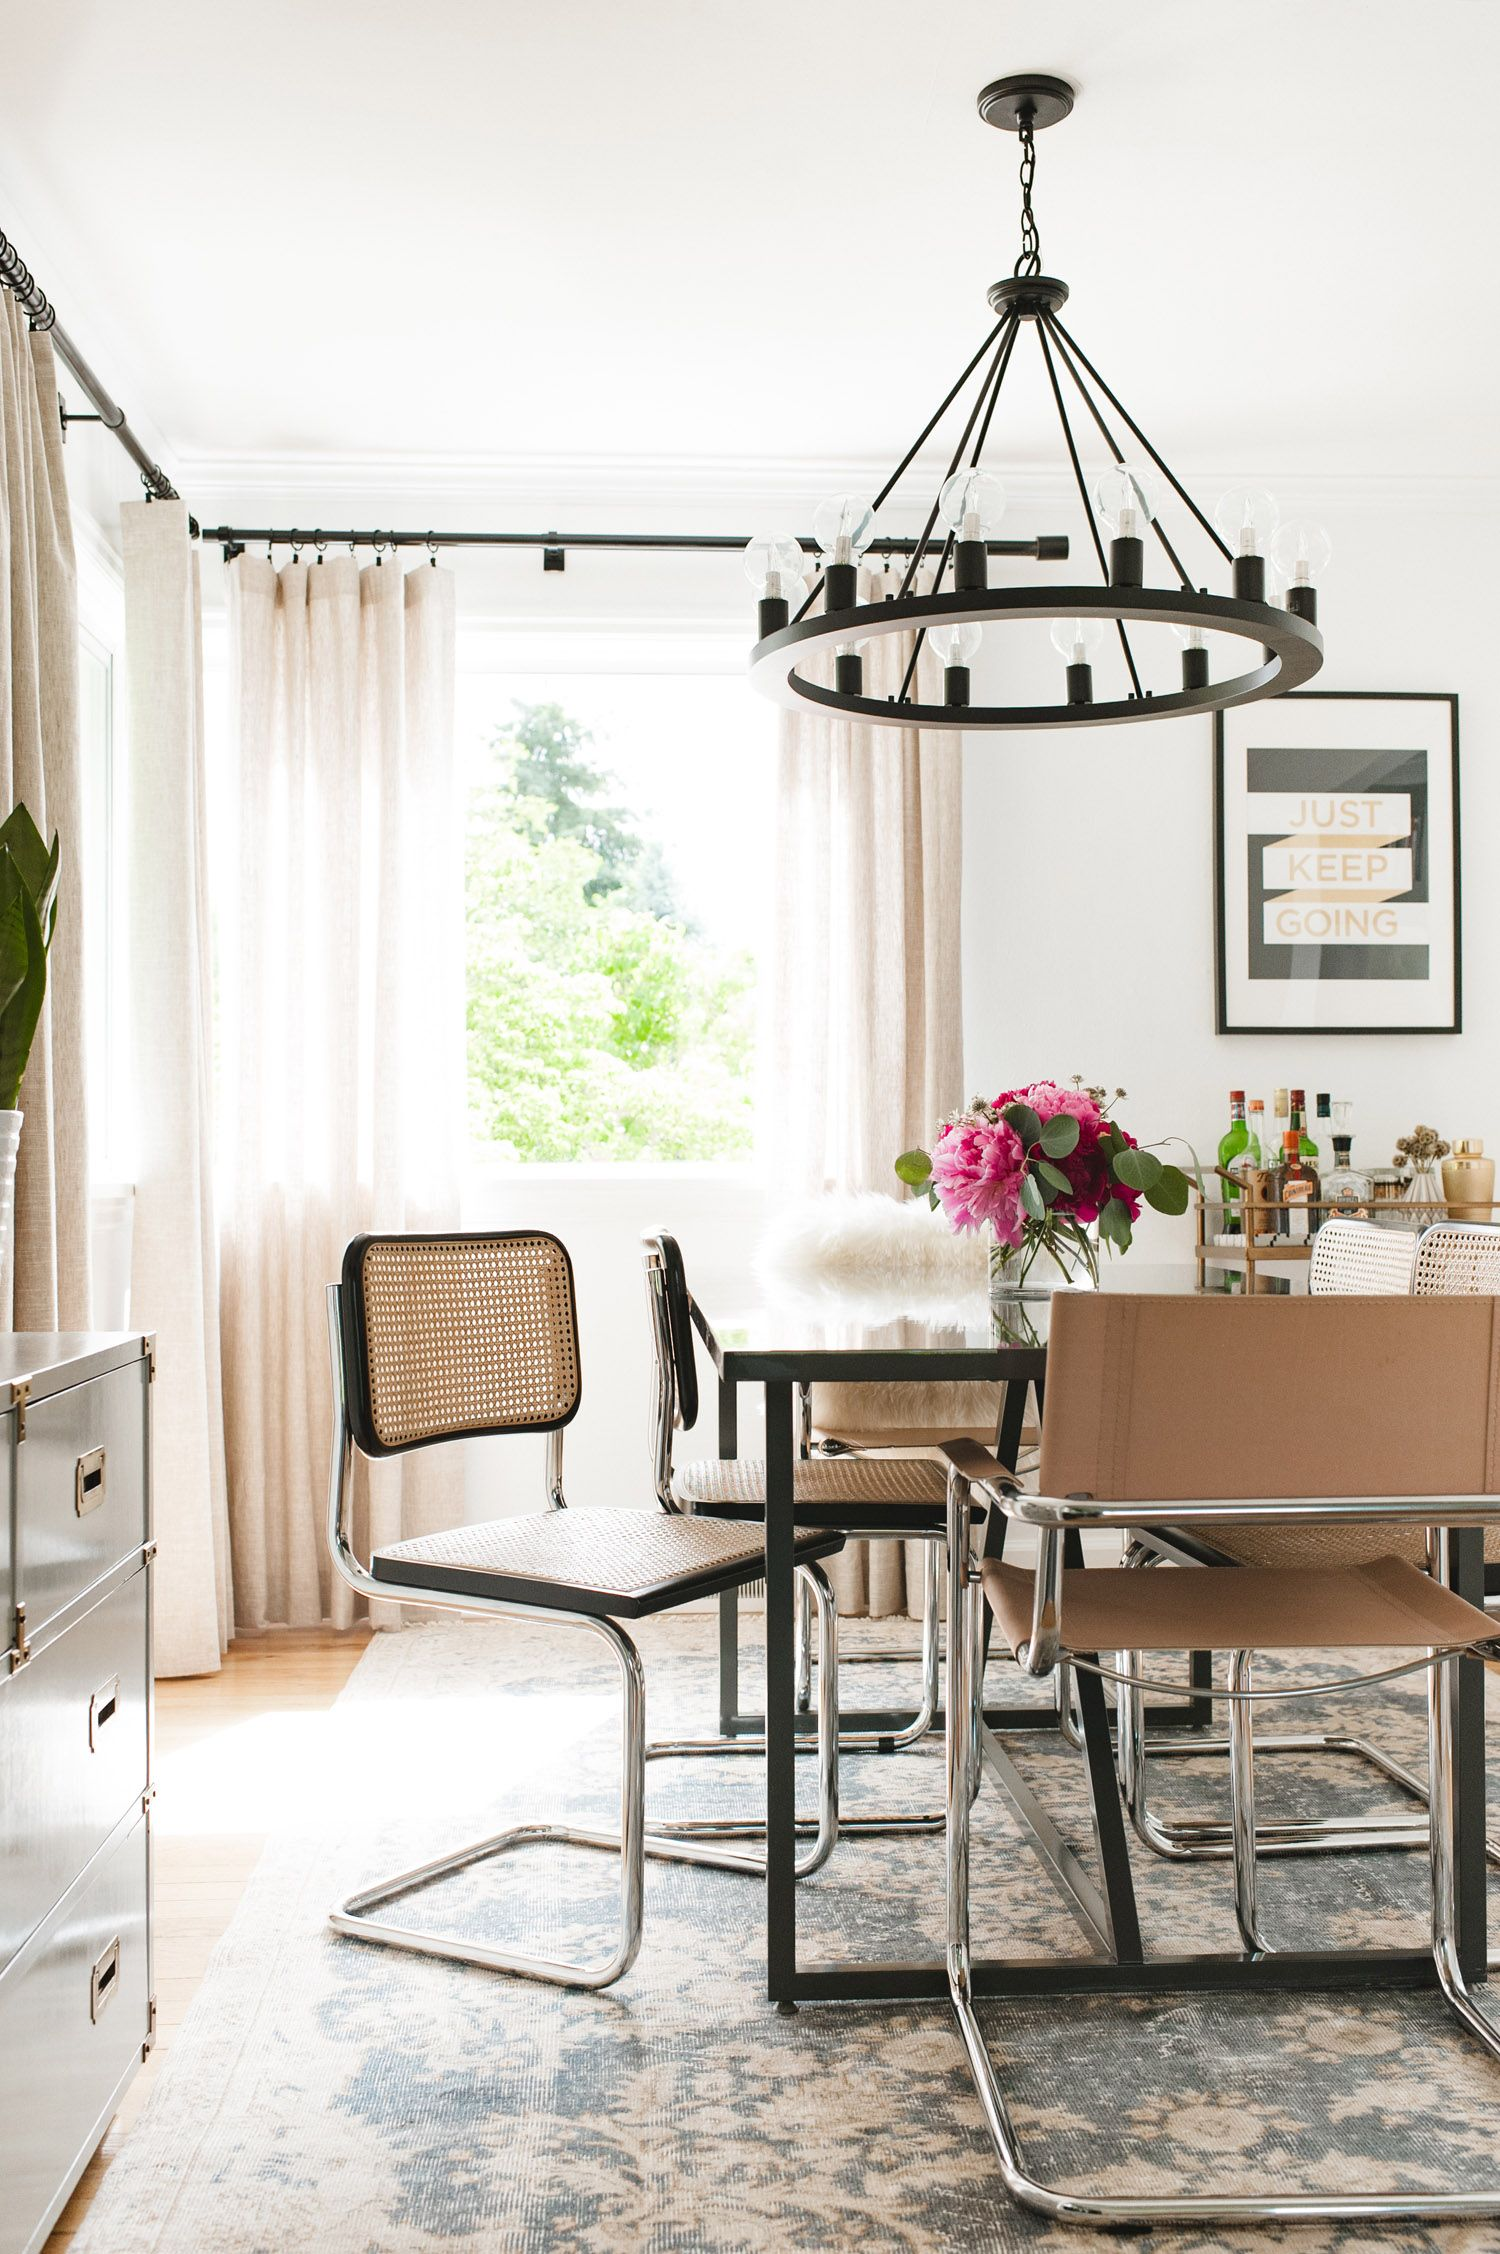 west elm - Eclectic Glam Style In Seattle